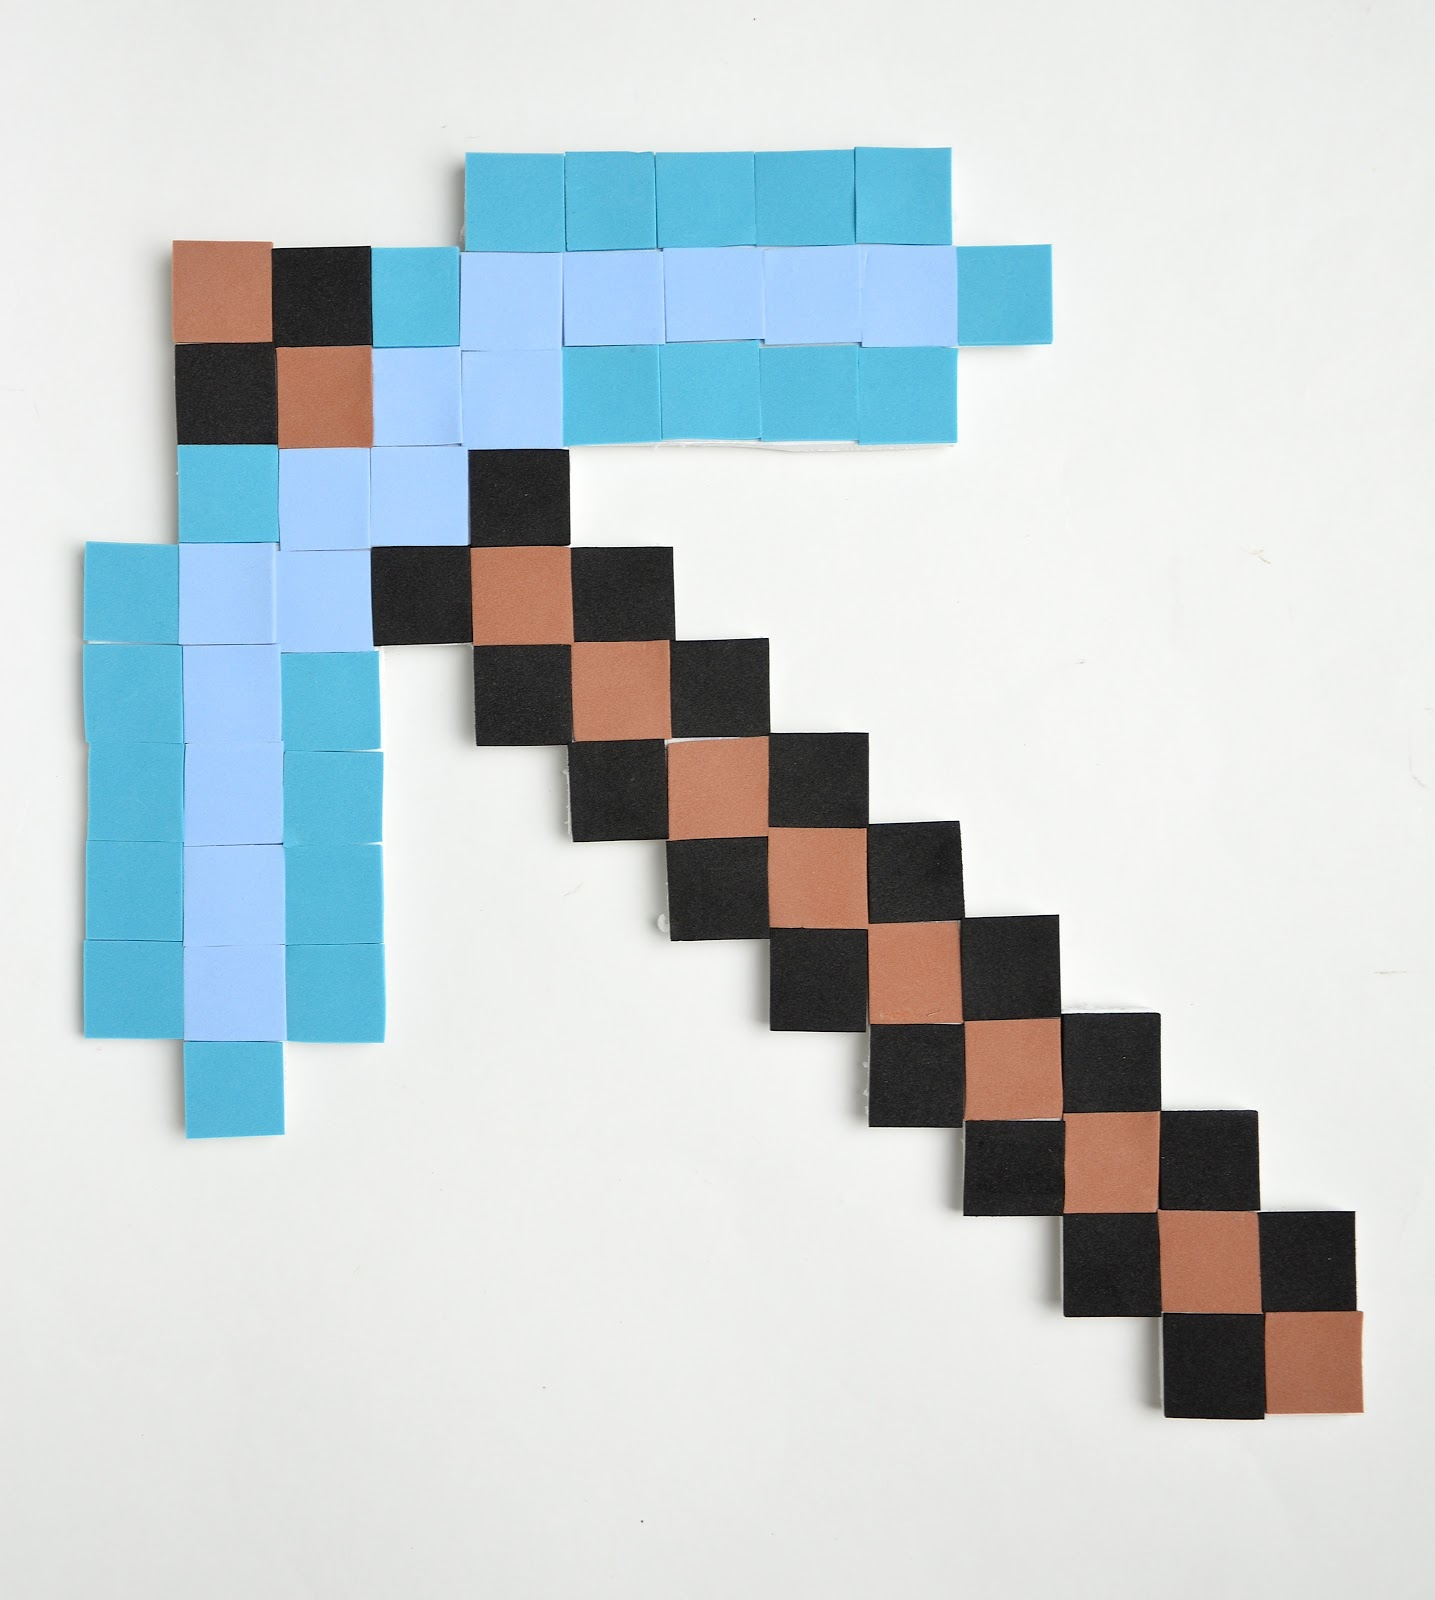 Minecraft Drawings Pickaxe | www.pixshark.com - Images ...